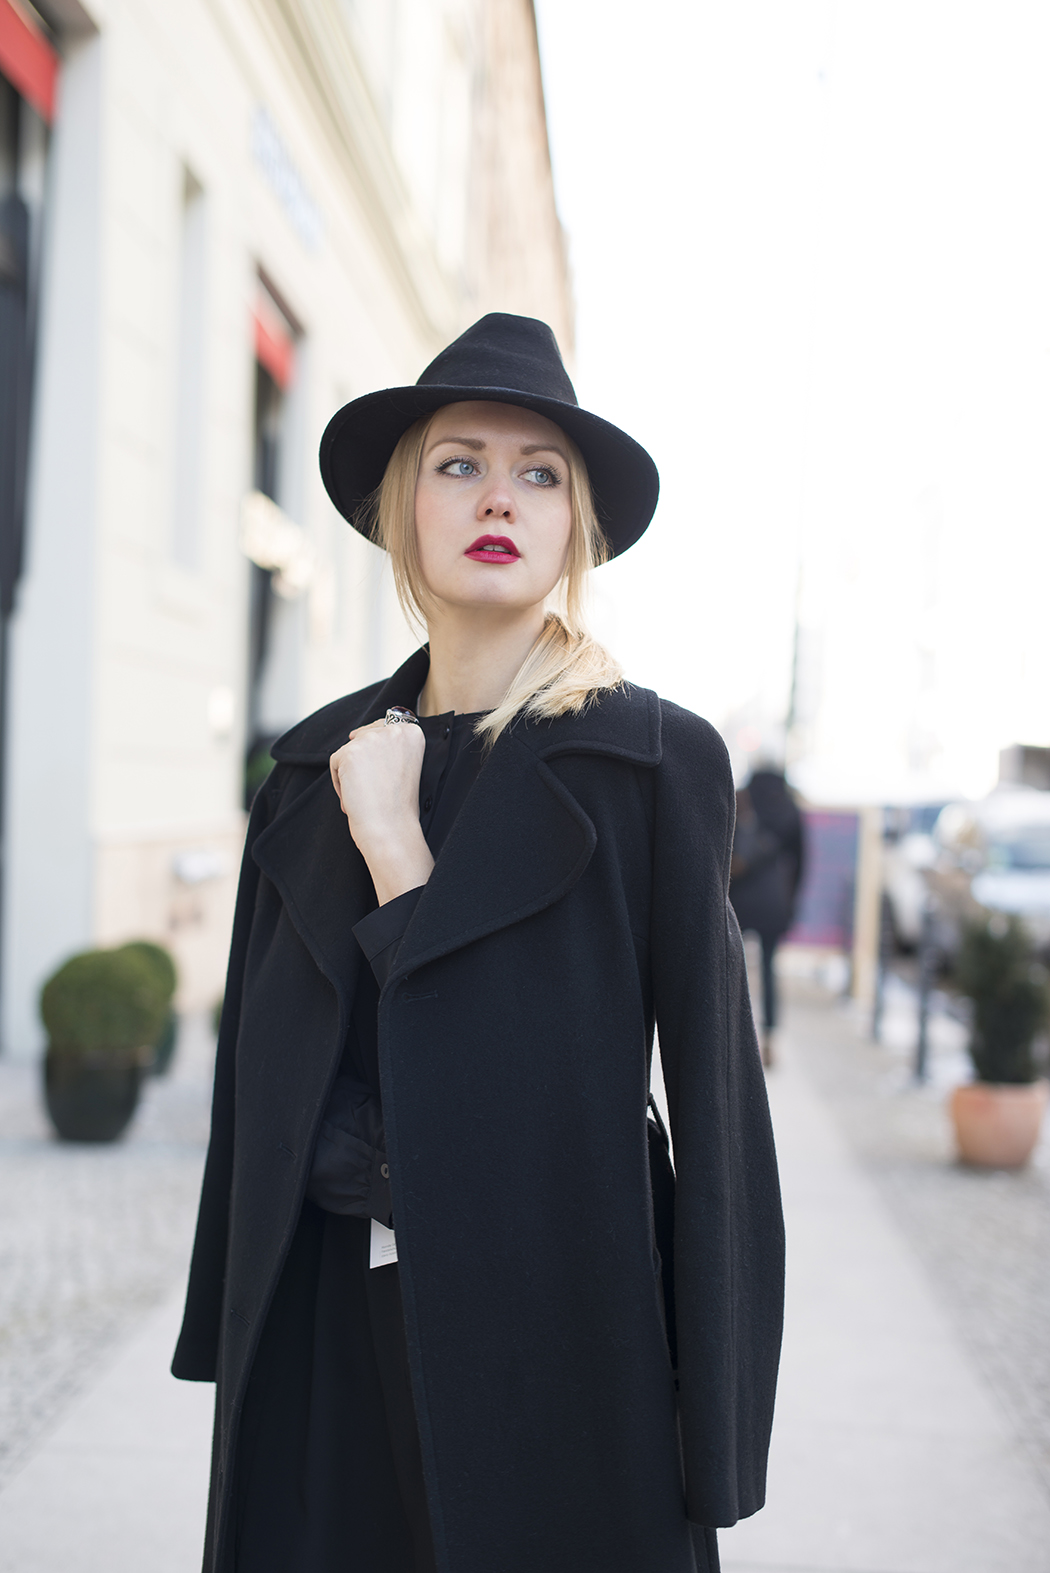 inspiration, streetstyle, winter outfit, annamidday, top fashion blogger, top russian fashion blogger, фэшн блогер, русский блогер, известный блогер, топовый блогер, russian bloger, top russian blogger, streetfashion, russian fashion blogger, blogger, fashion, style, fashionista, модный блогер, российский блогер, ТОП блогер, ootd, lookoftheday, look, популярный блогер, российский модный блогер, russian girl, pastel colors, pastel colors combination, цветовые сочетания, streetstyle, красивая девушка, pastel pants, pastel sweater, Анна миддэй, анна мидэй, Mar Cain, MBFWB, MBFW Berlin 2016, Berlin fashion week 2016, Fashion week, runway Marc cain, velvet affair's, VELVET LOUNGE, MARC CAIN FASHION SHOW